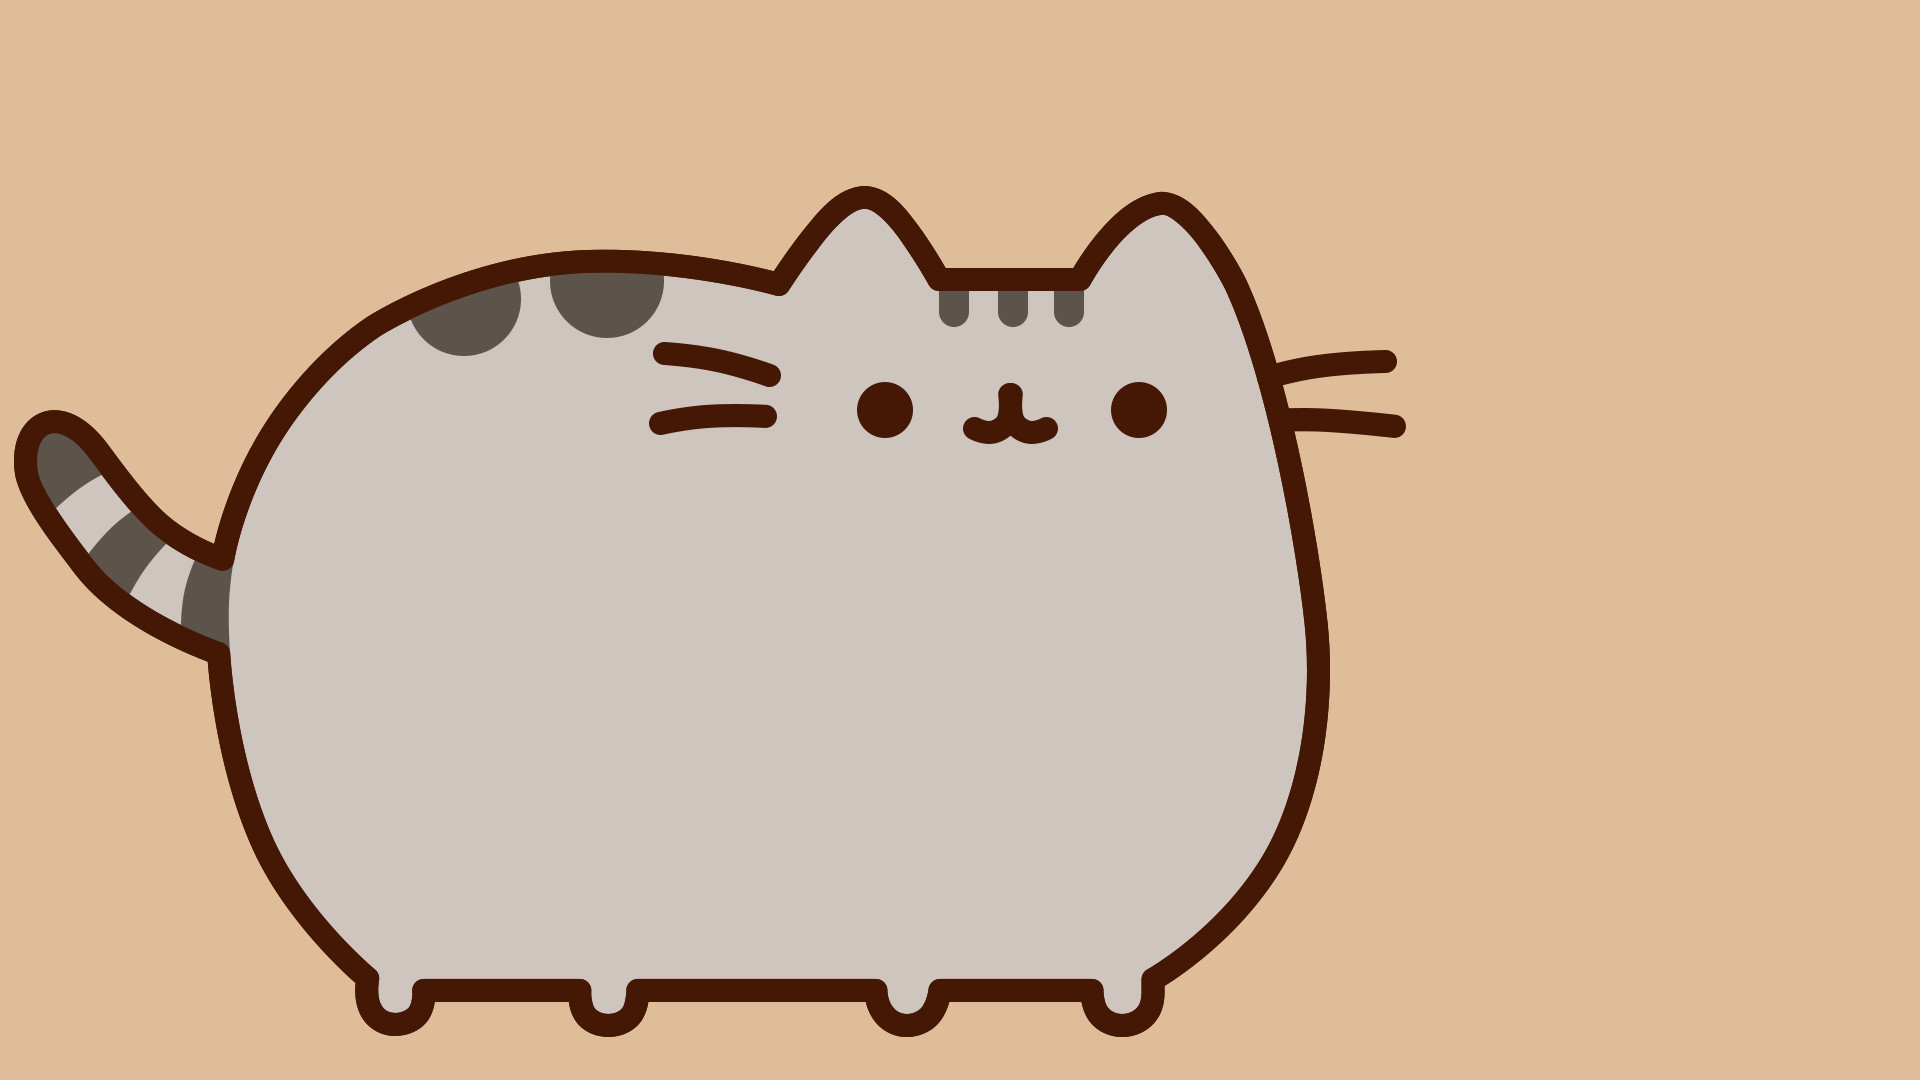 Cool Quote Wallpapers Hd 1920x1080 Pusheen Desktop Wallpaper 61 Images